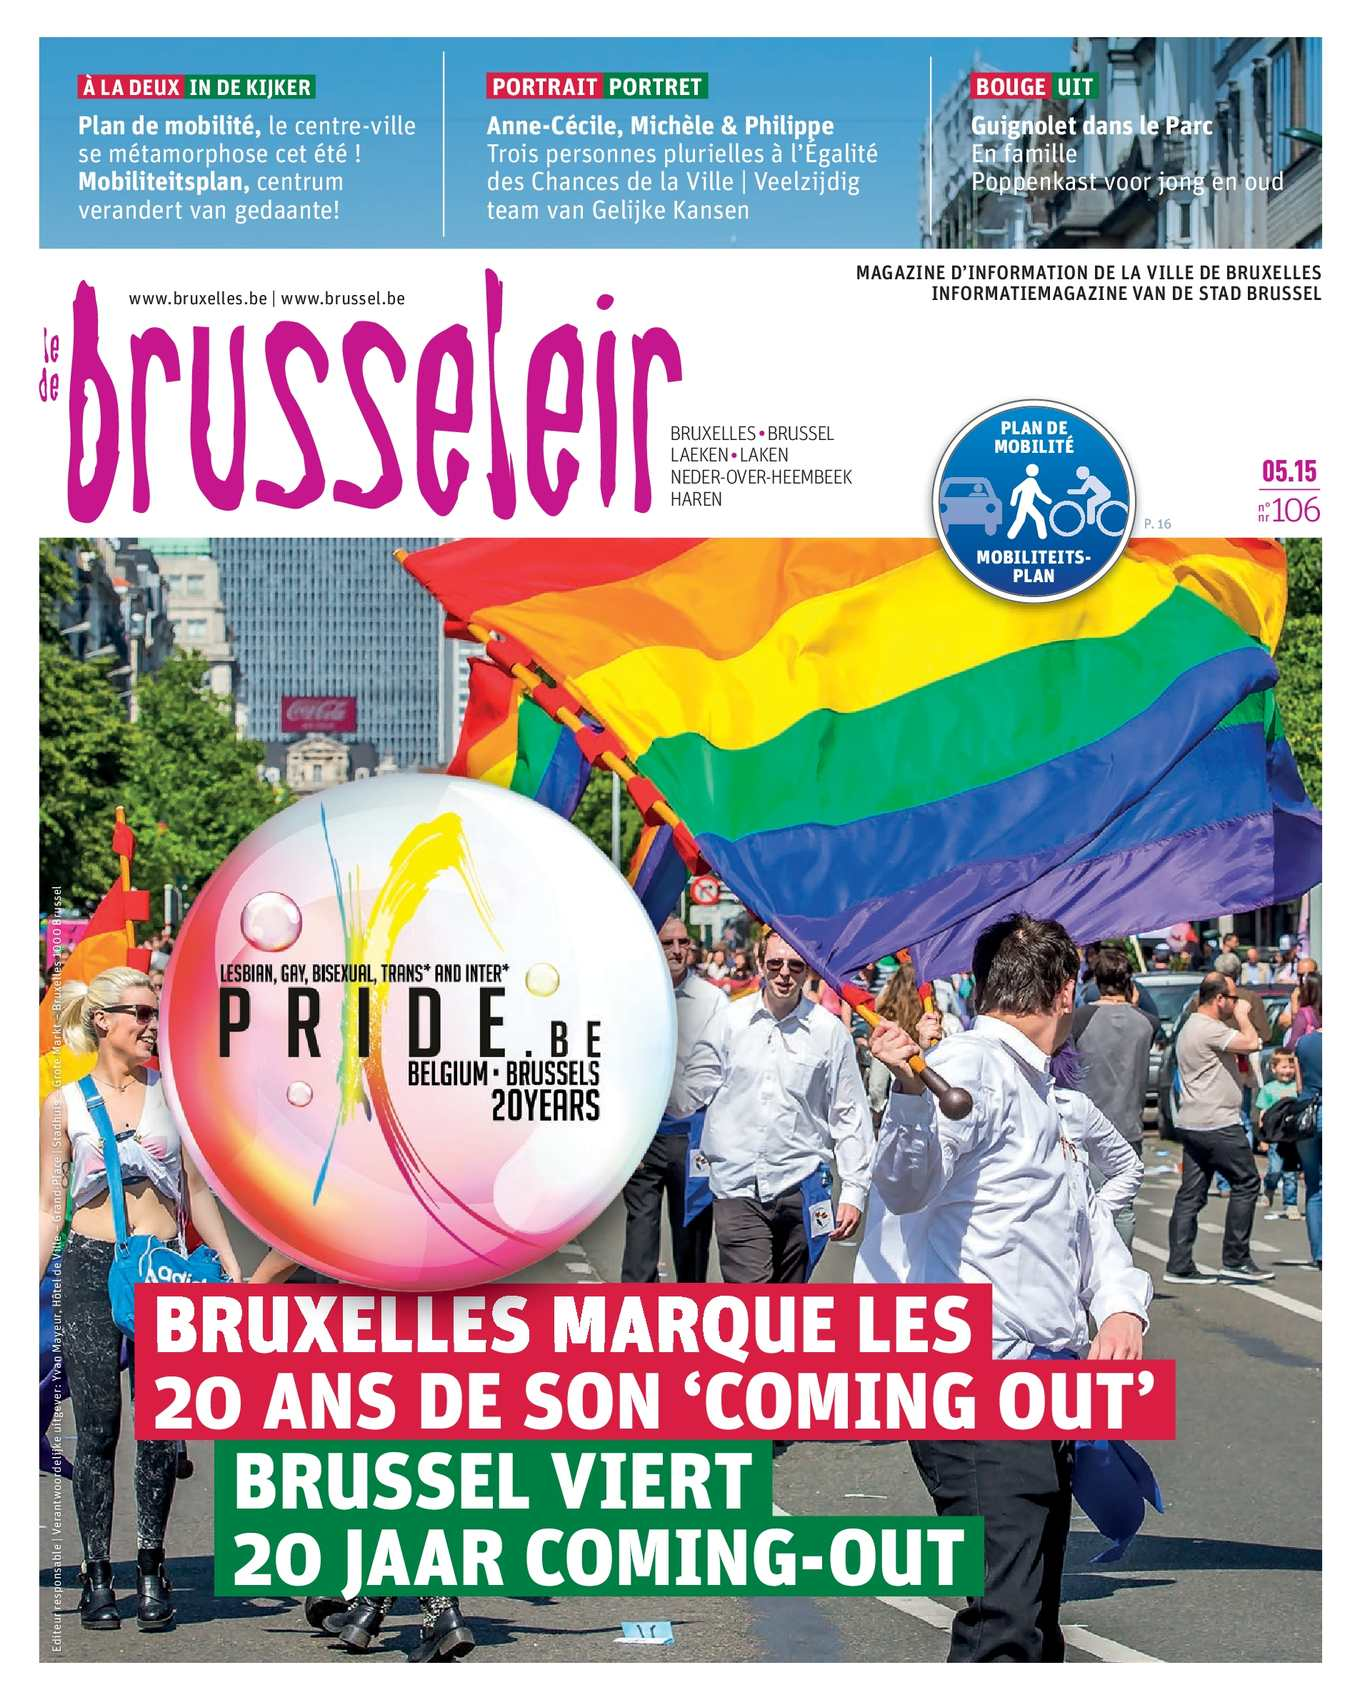 annonce transsexuel brussels